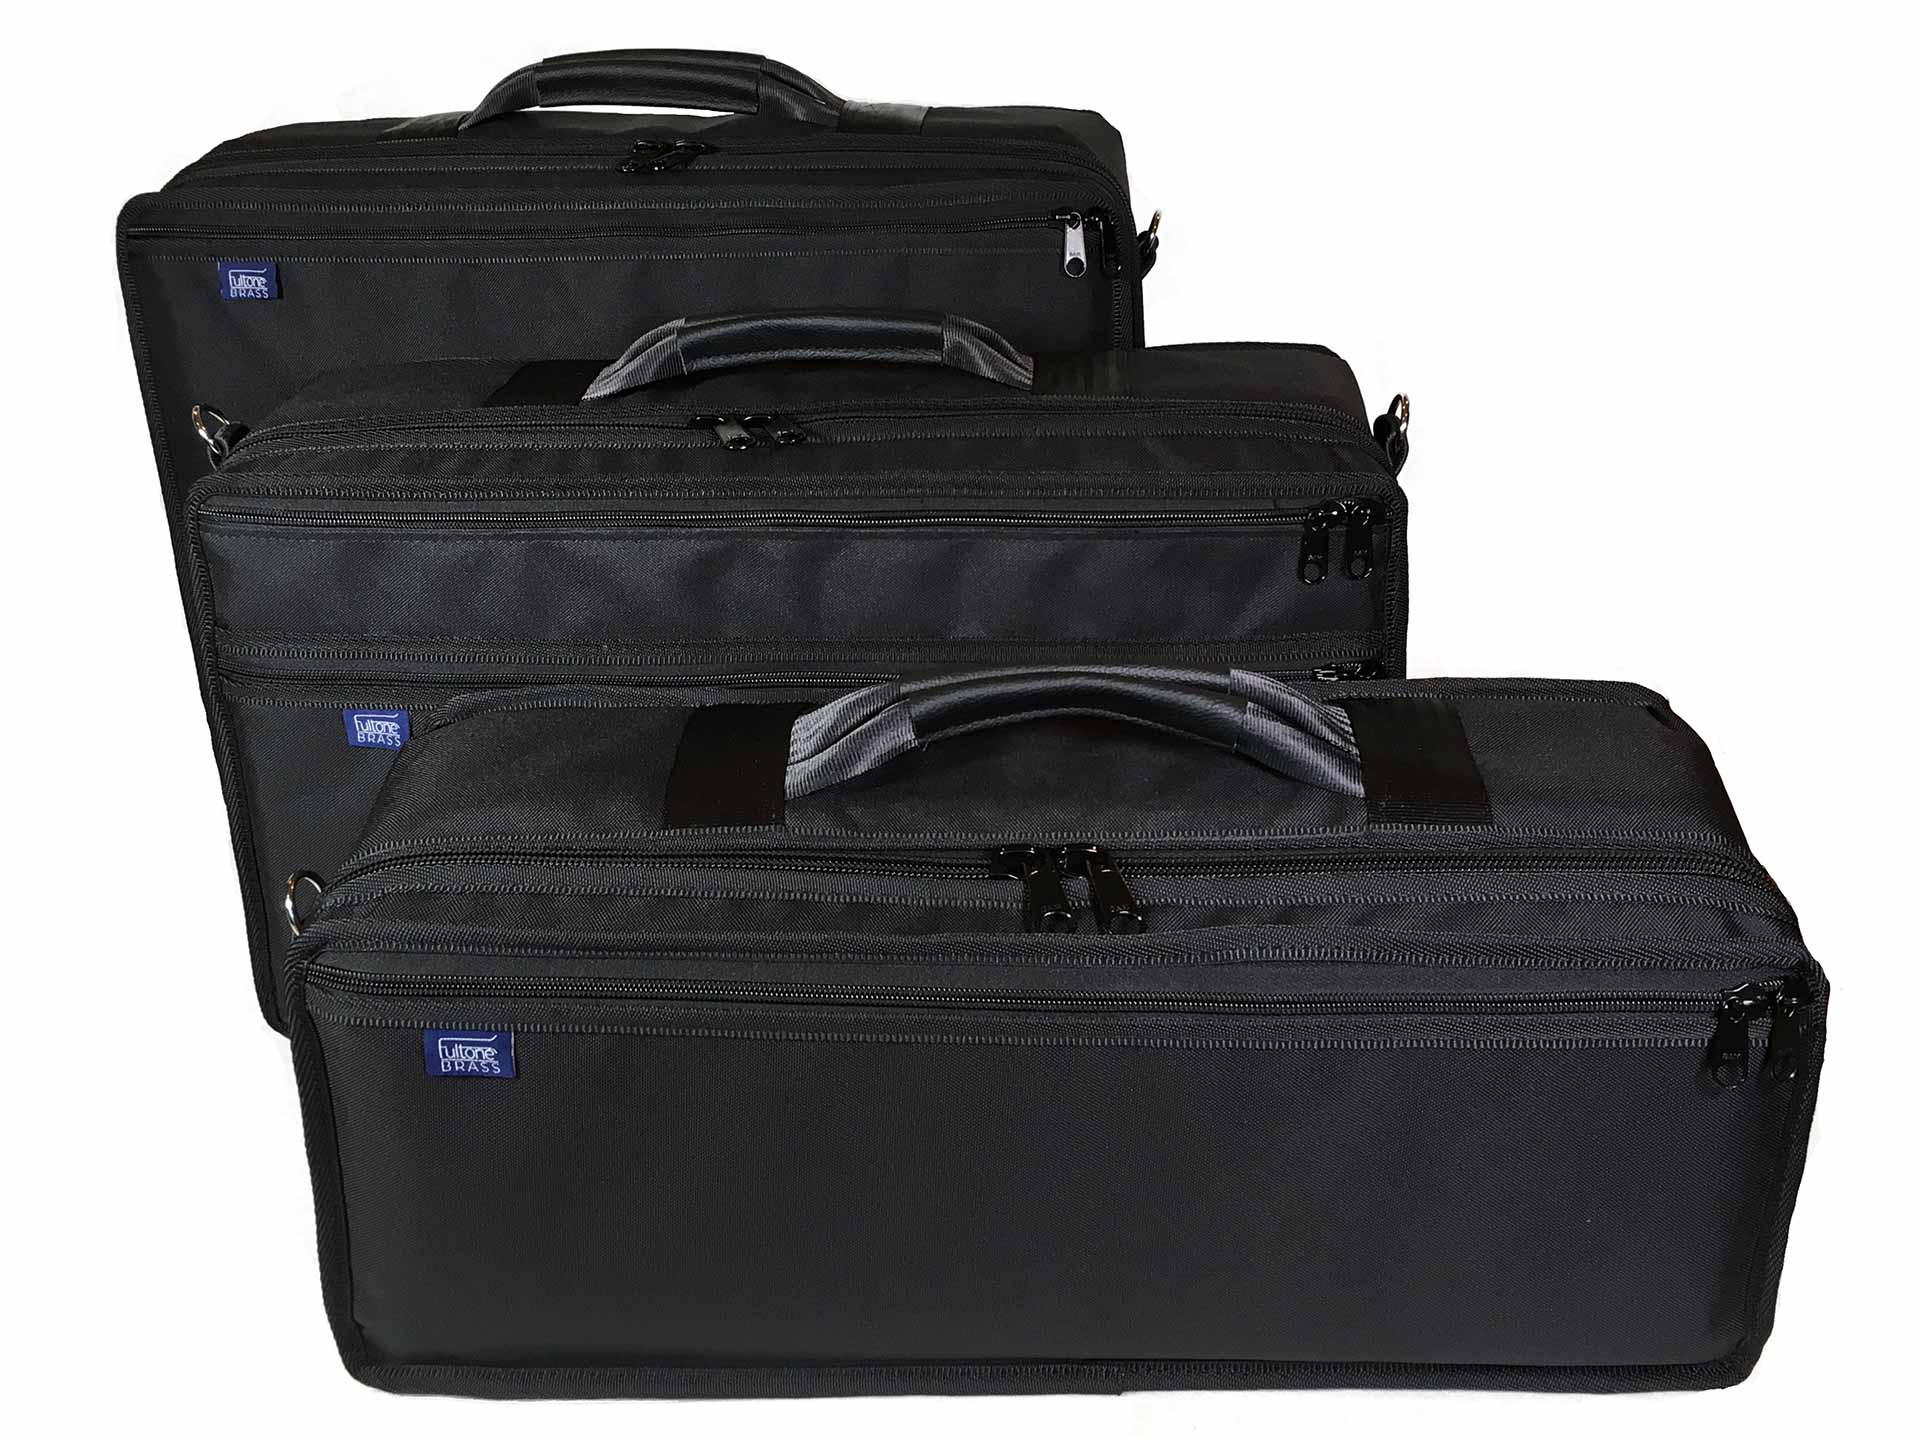 Fultone Brass - Ft Trumpet Case Series - Ft DOUBLE - Ft TRIPLE - Ft QUAD